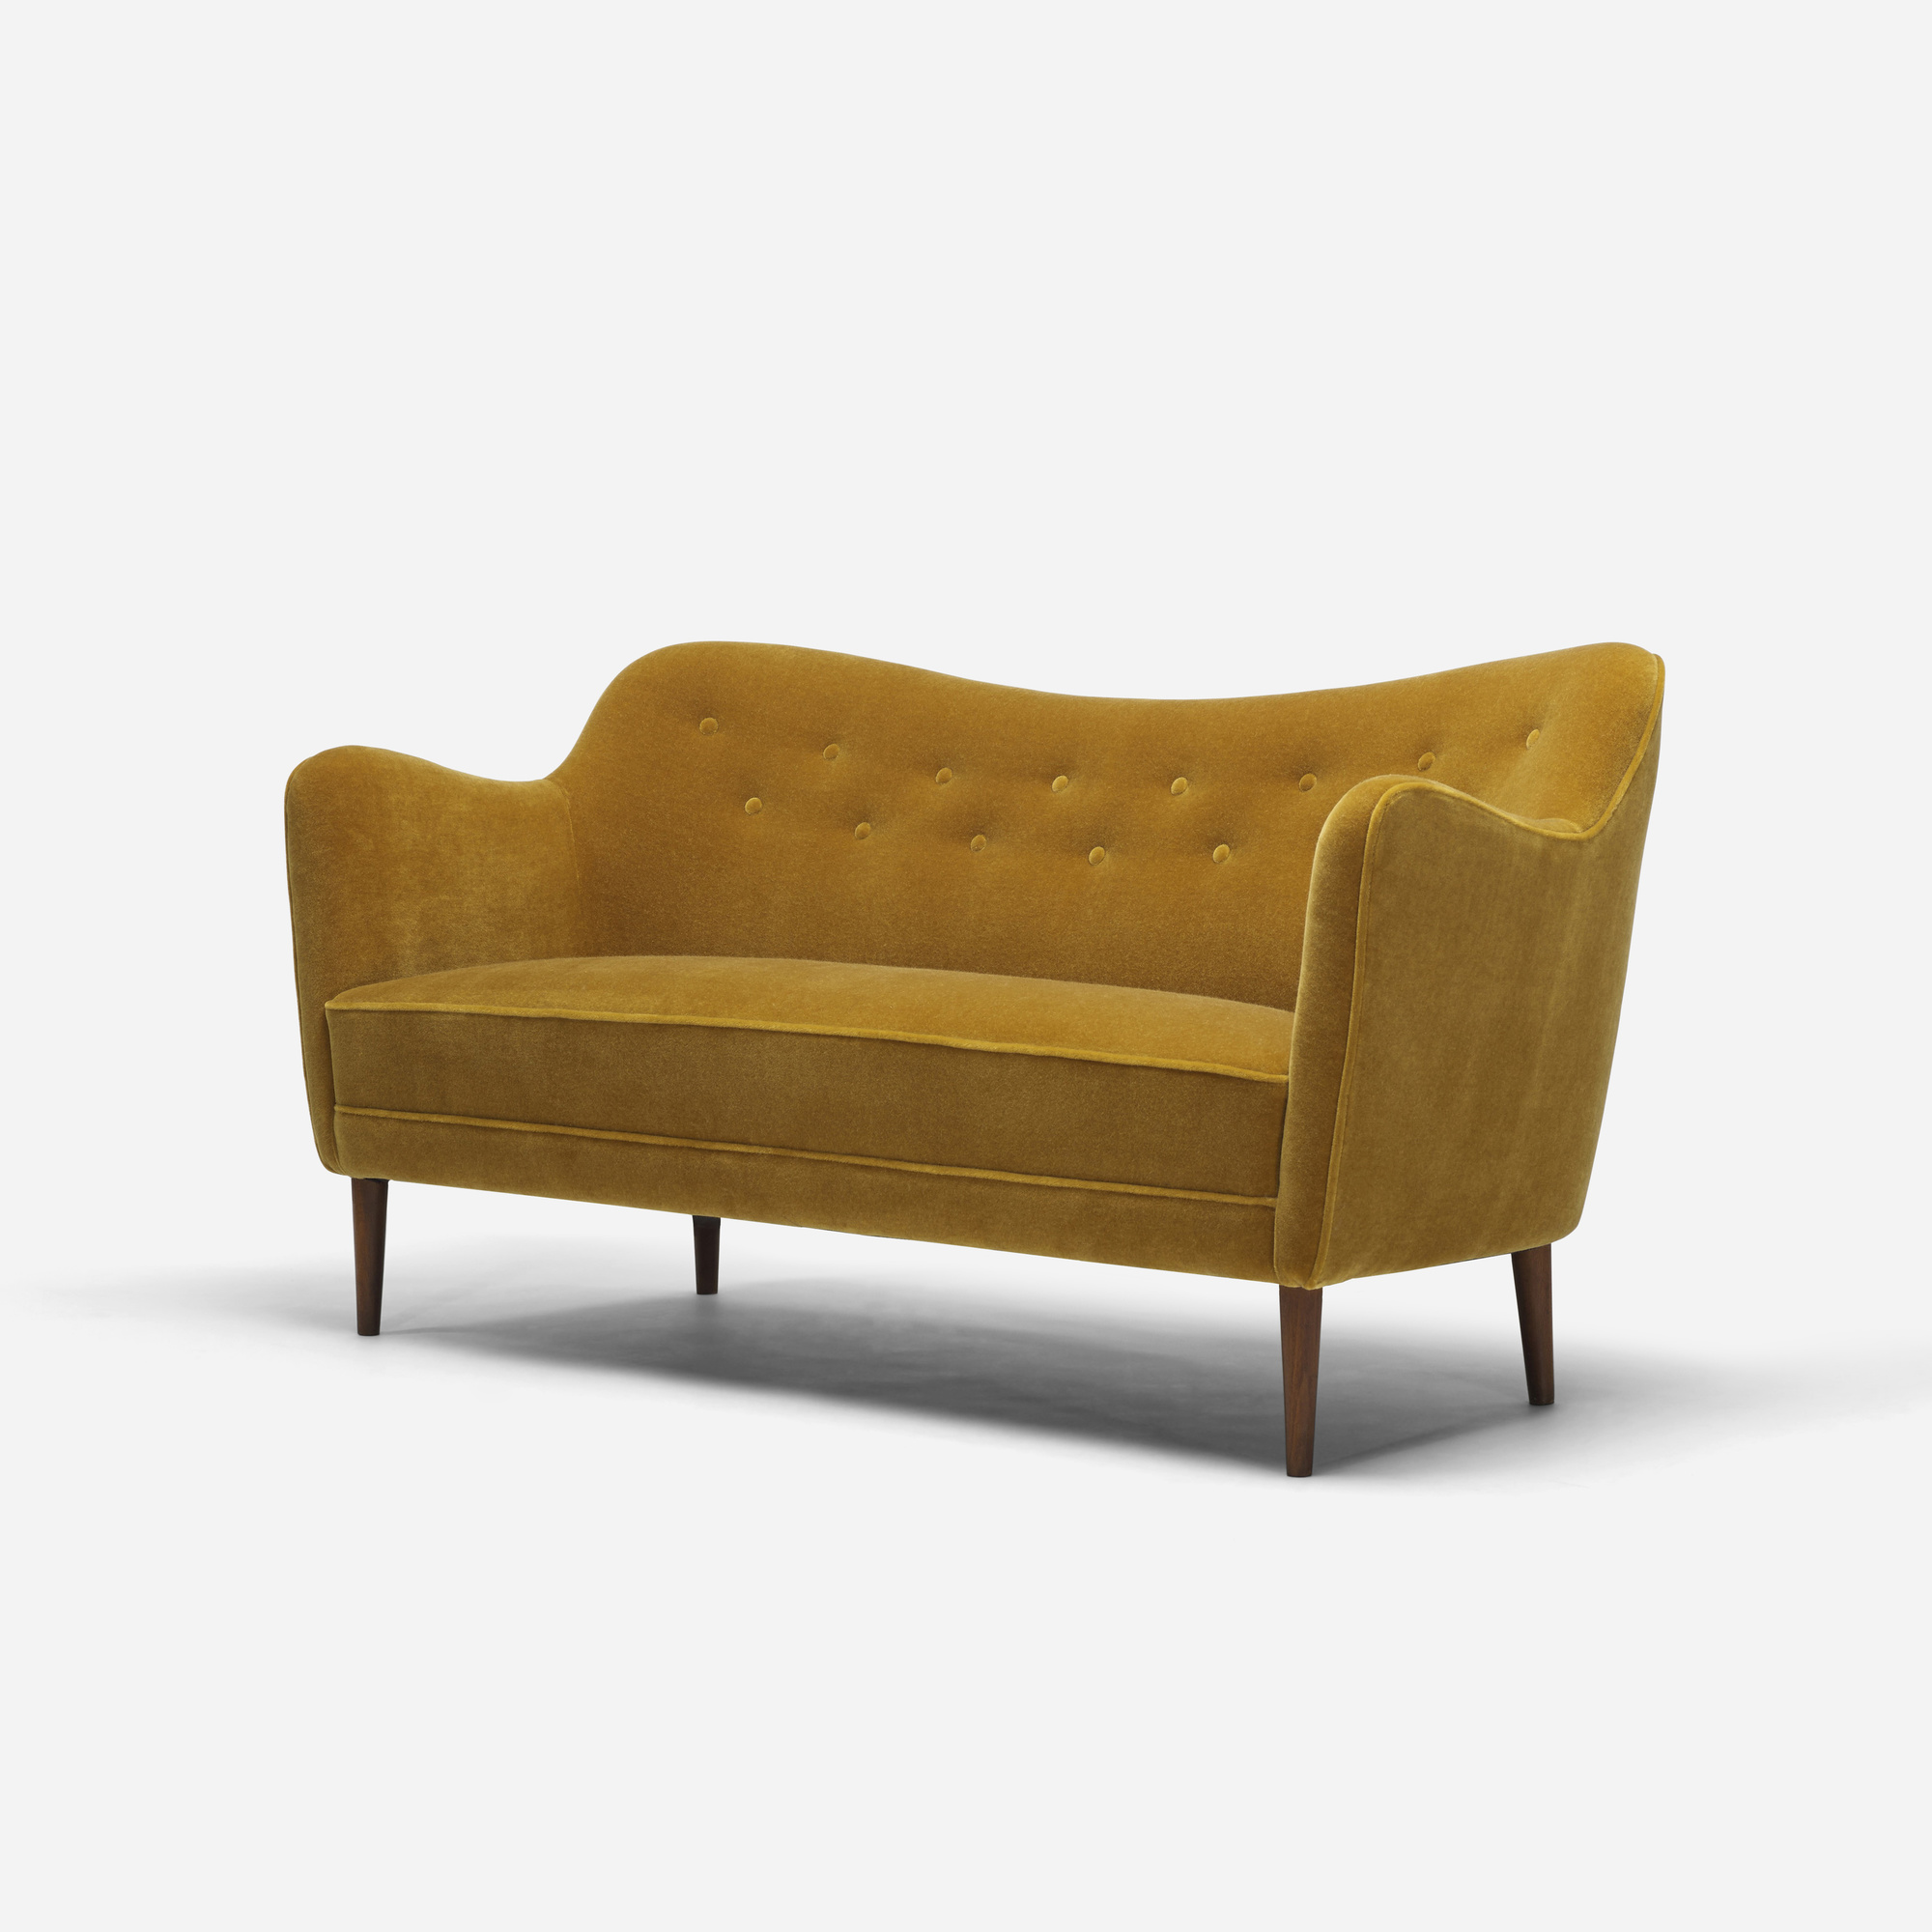 122: Finn Juhl / sofa (3 of 3)